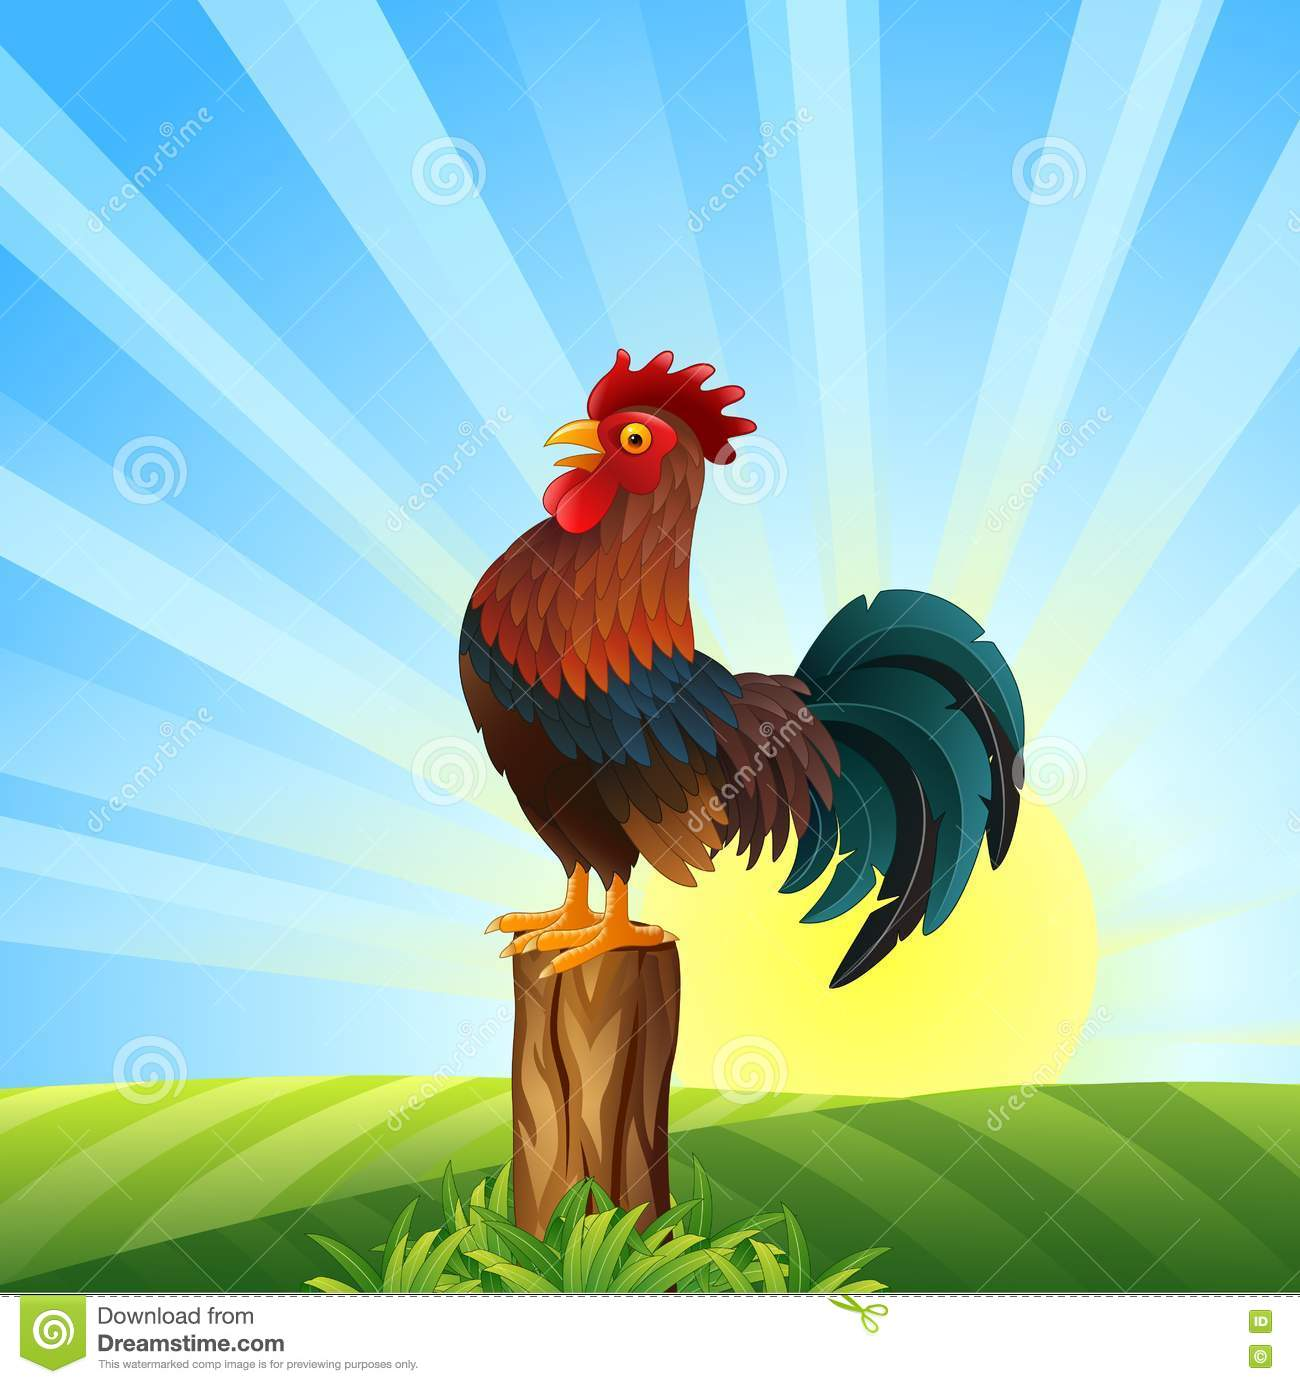 Cartoon Rooster Crowing At Dawn Stock Vector - Image: 77893669